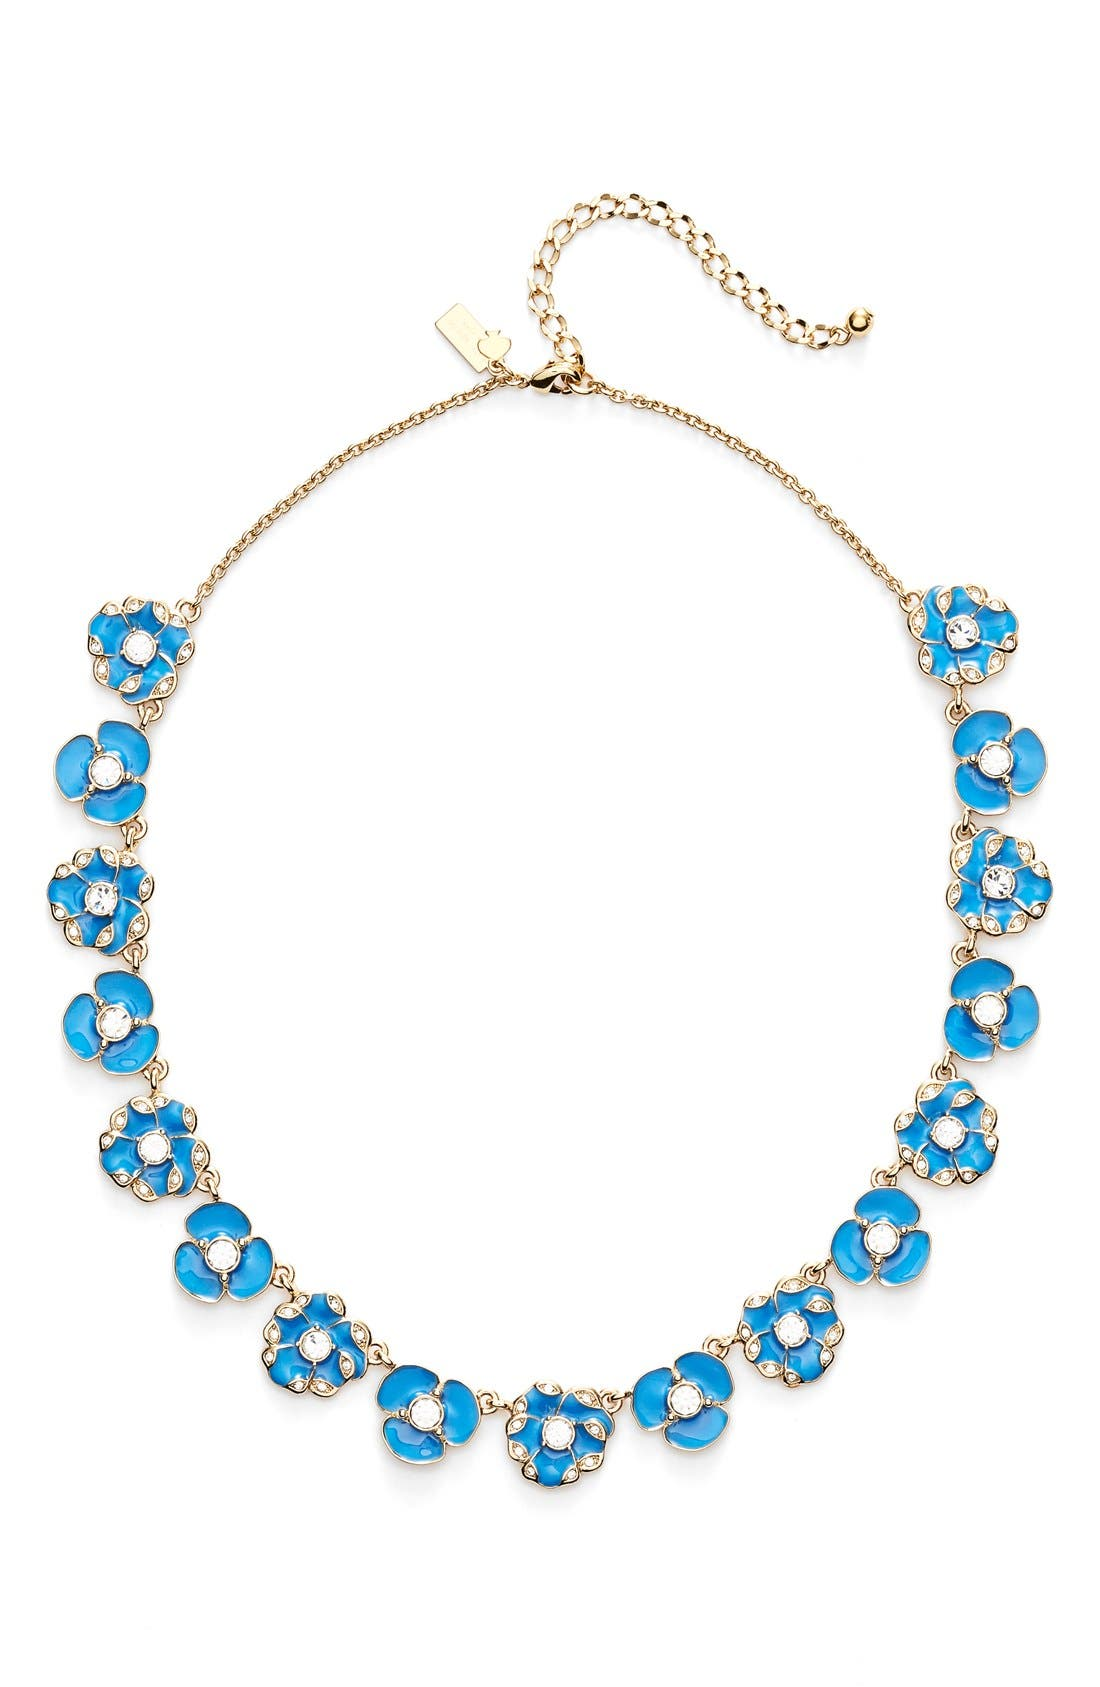 Main Image - kate spade new york 'beach house bouquet' collar necklace